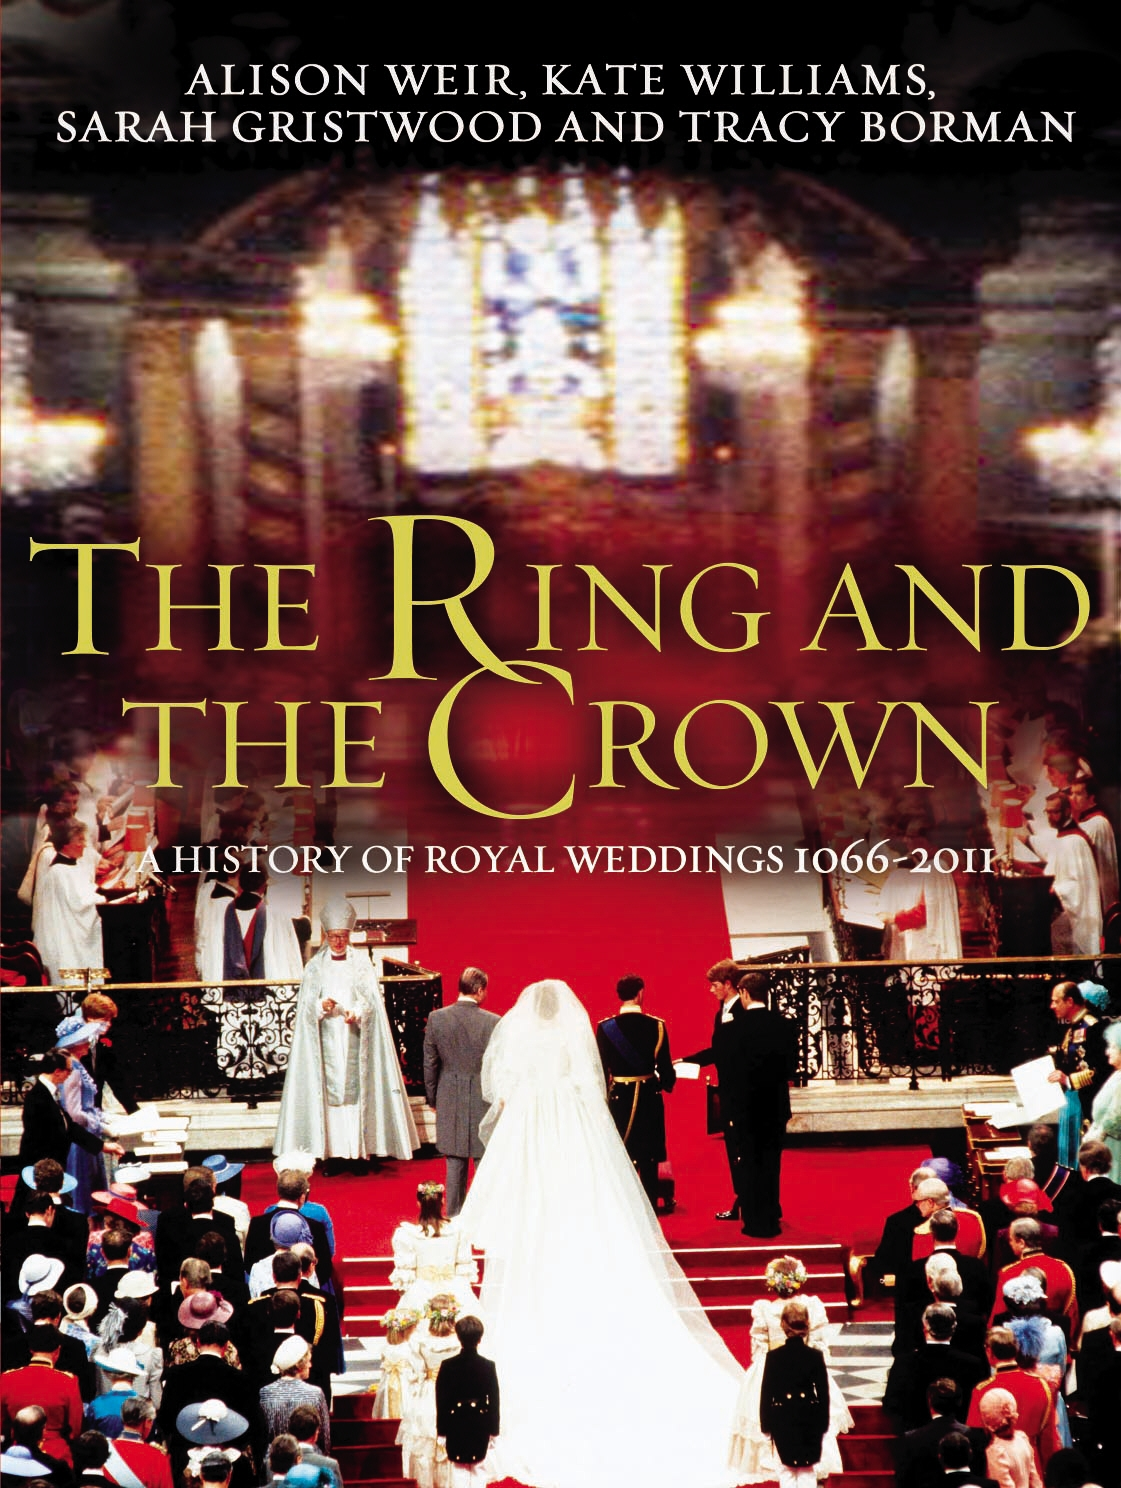 The Ring and the Crown: A History of Royal Weddings 1066-2011 by Alison Weir, Kate Williams, Sarah Gristwood and Tracy Borman, ISBN: 9780091943776